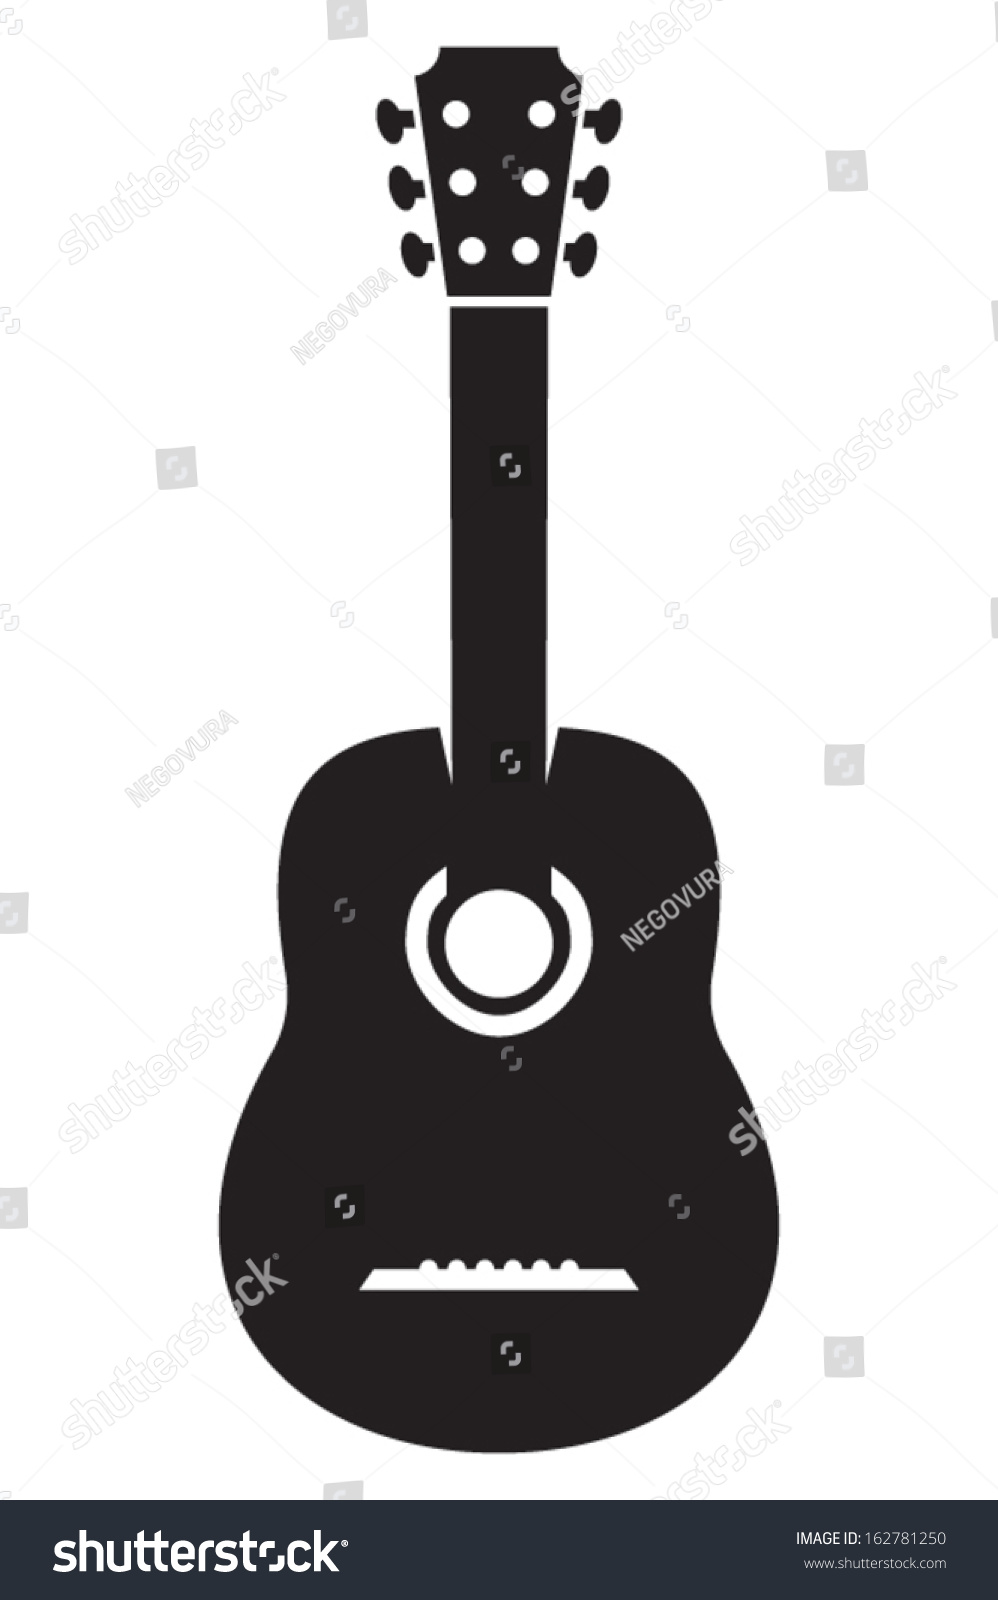 Acoustic Guitar Icon Stock Vector Illustration 162781250 ...